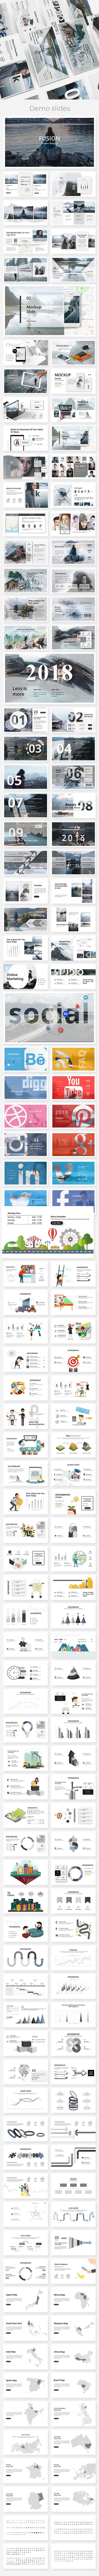 GraphicRiver - Fusion Creative Powerpoint Template 22642398